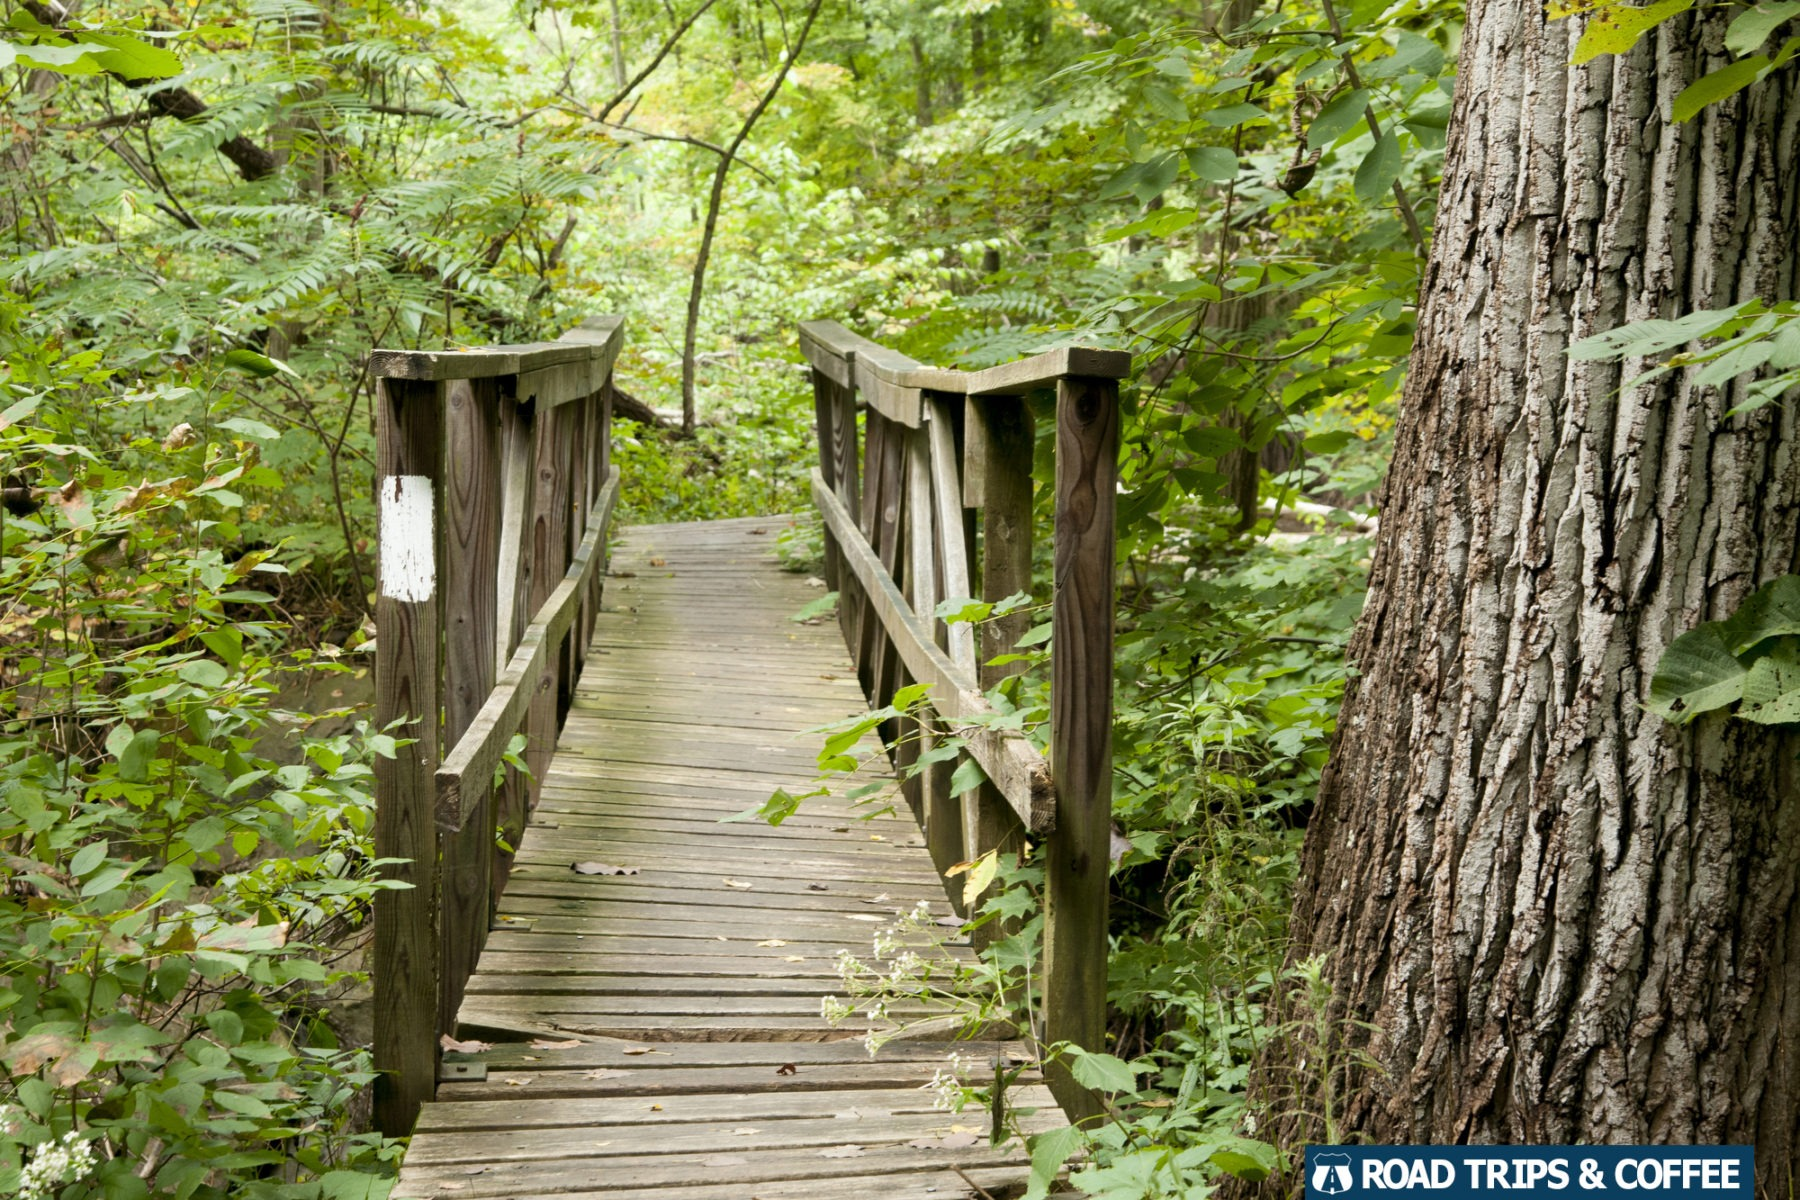 A wooden boardwalk in the woods along the Finger Lakes Trail in Hammondsport, New York